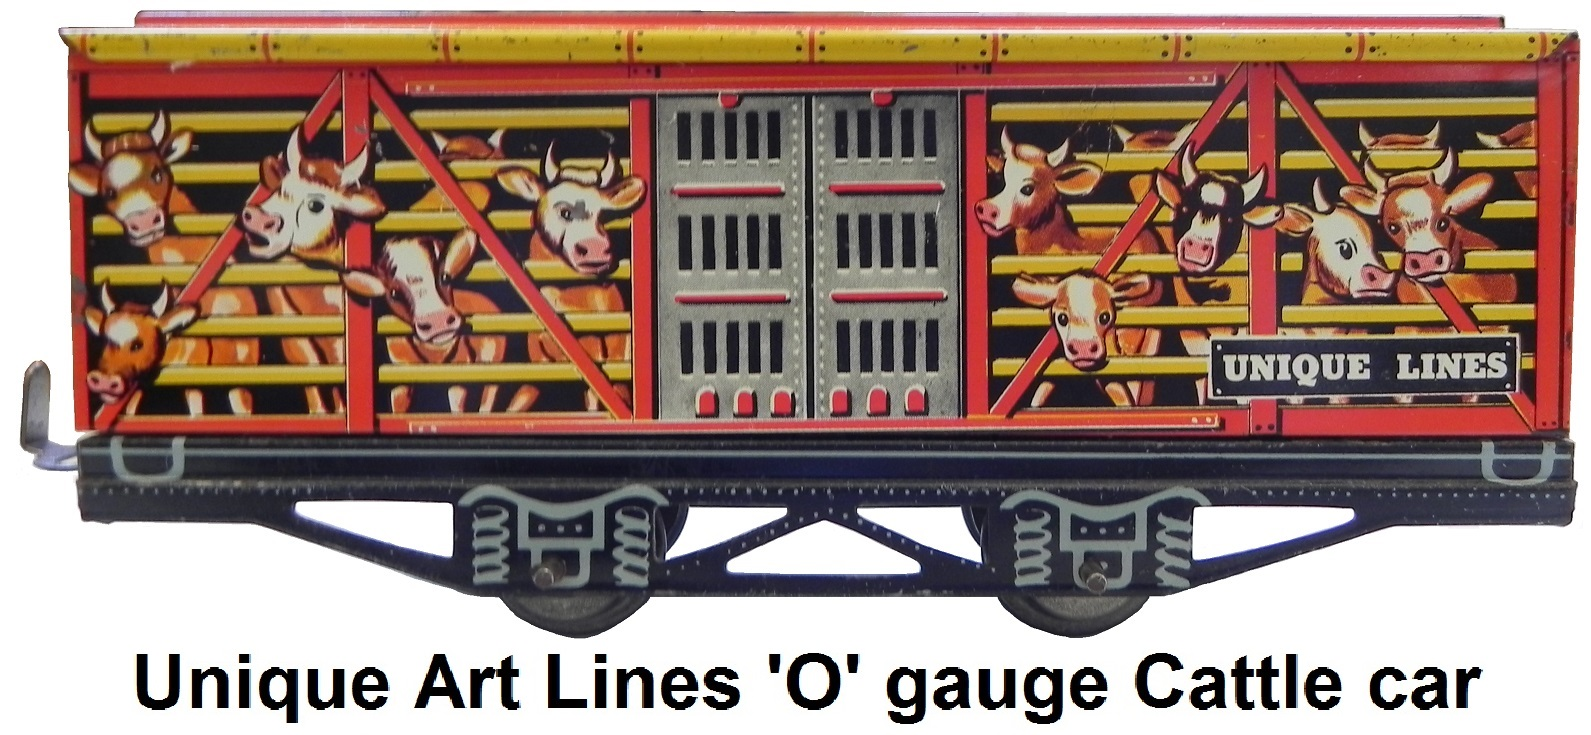 Unique Art tinplate 'O' gauge cattle car with comical lithography, catalogued in only one set 1949-51